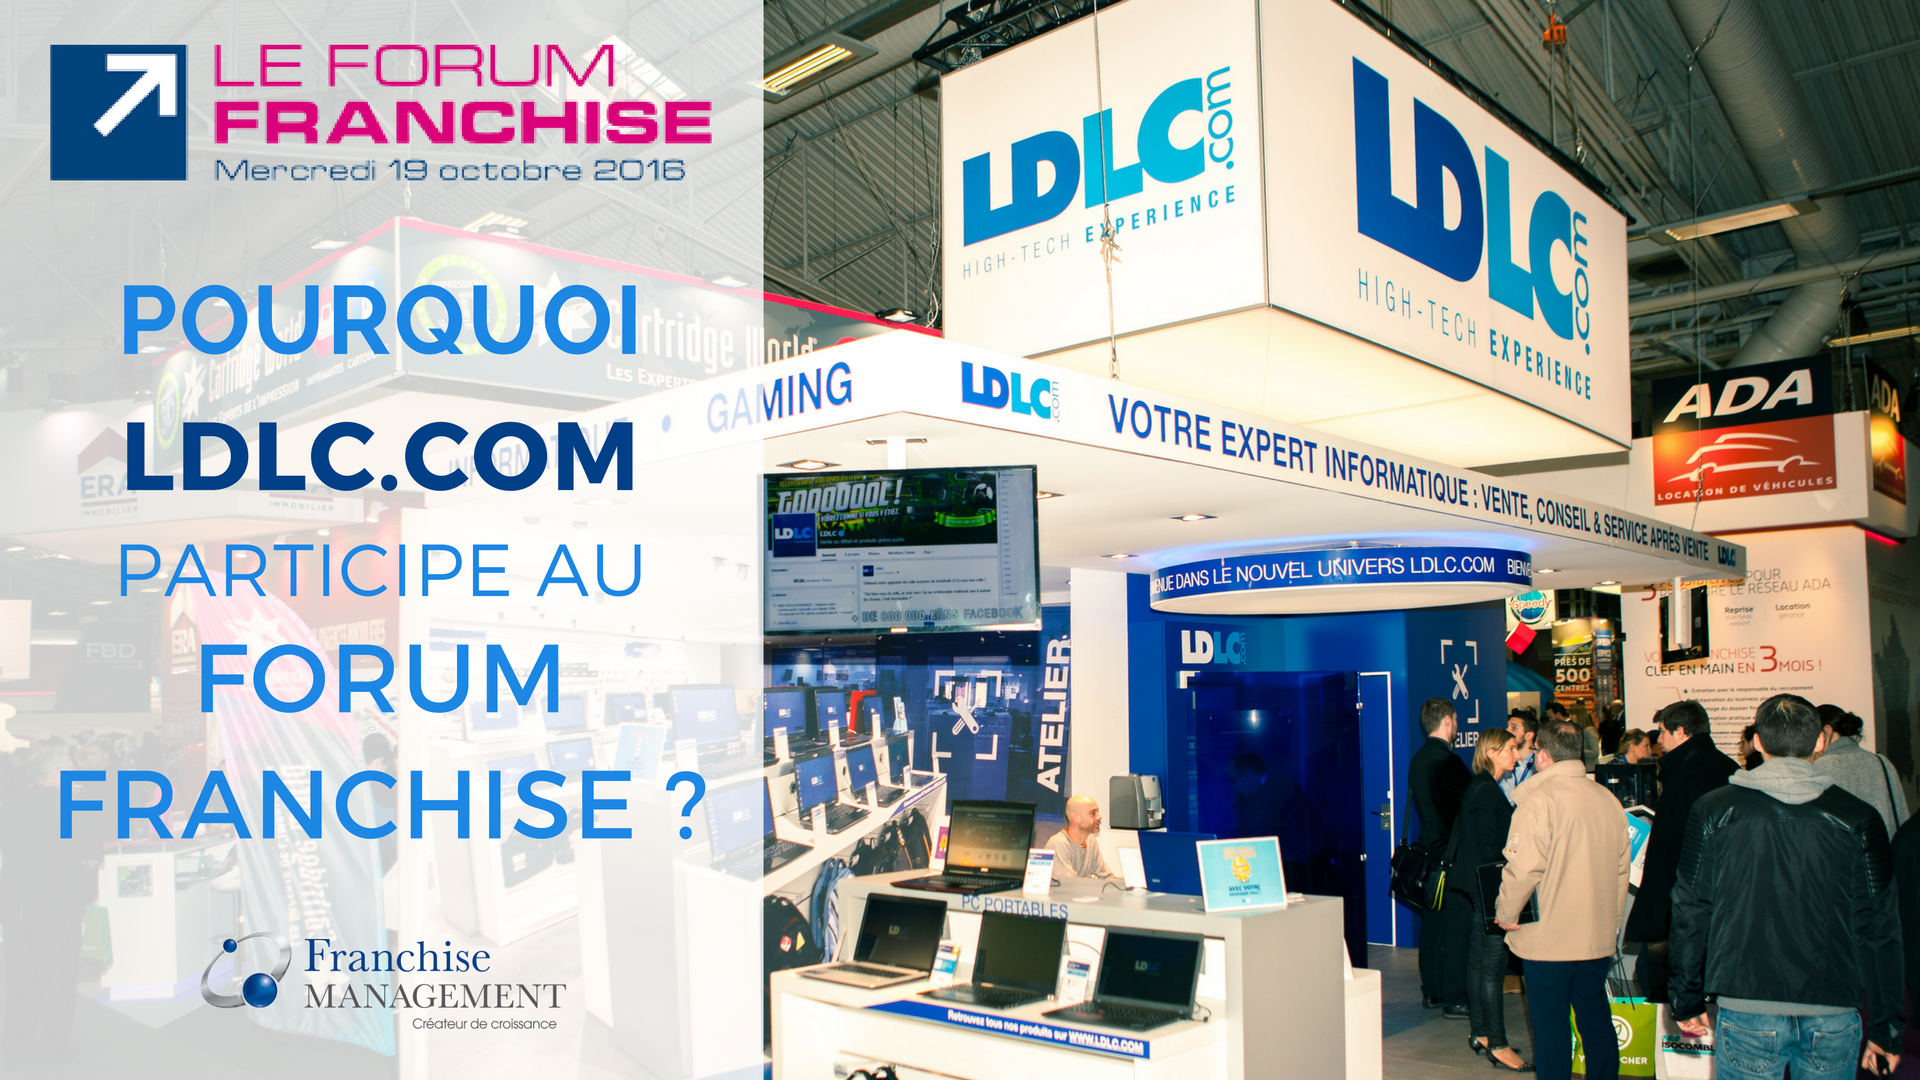 Article LDLC Forum Franchise L